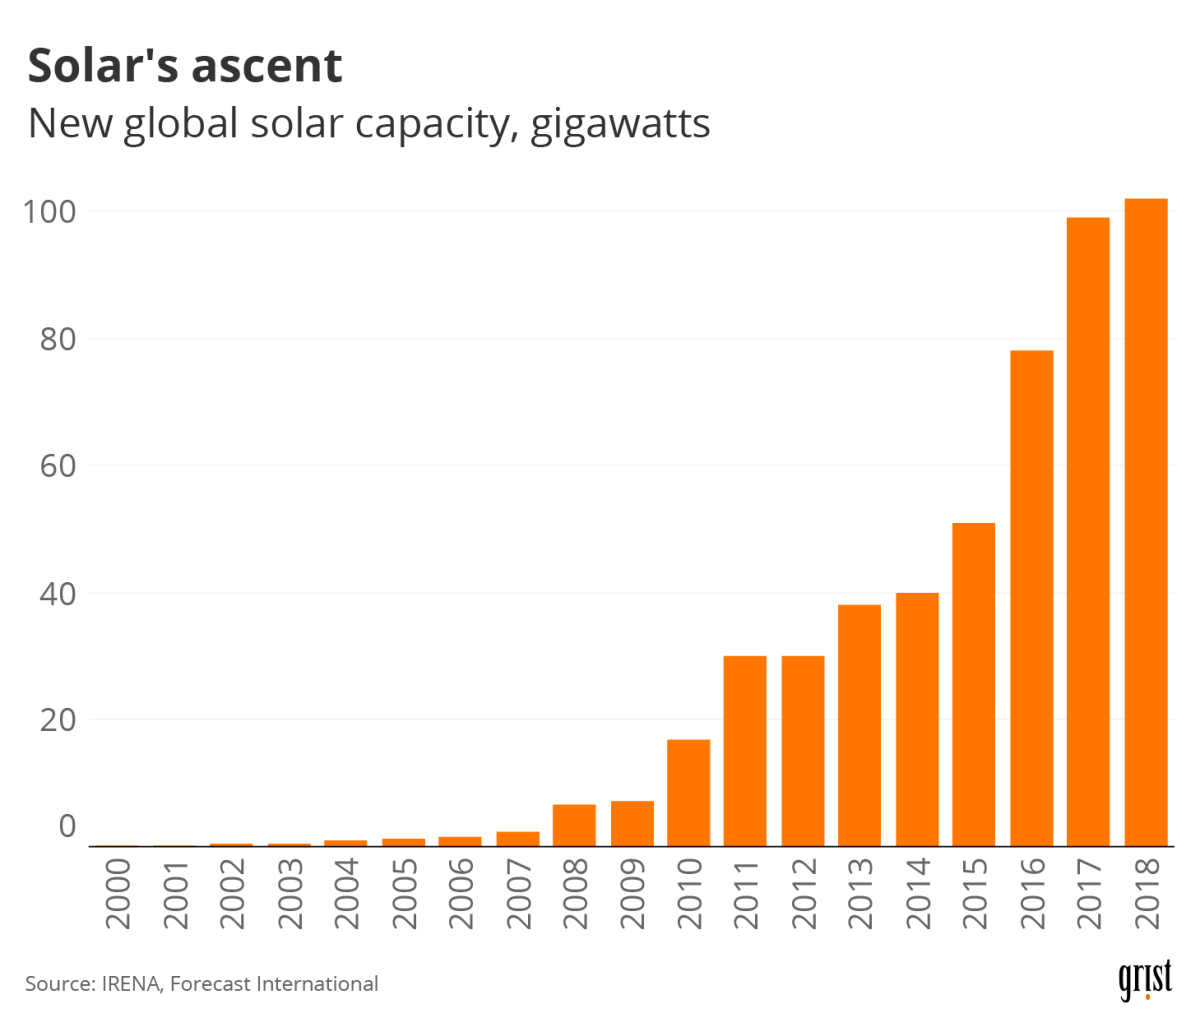 A bar chart show new global solar capacity since 2000. The added capacity has increased every year.